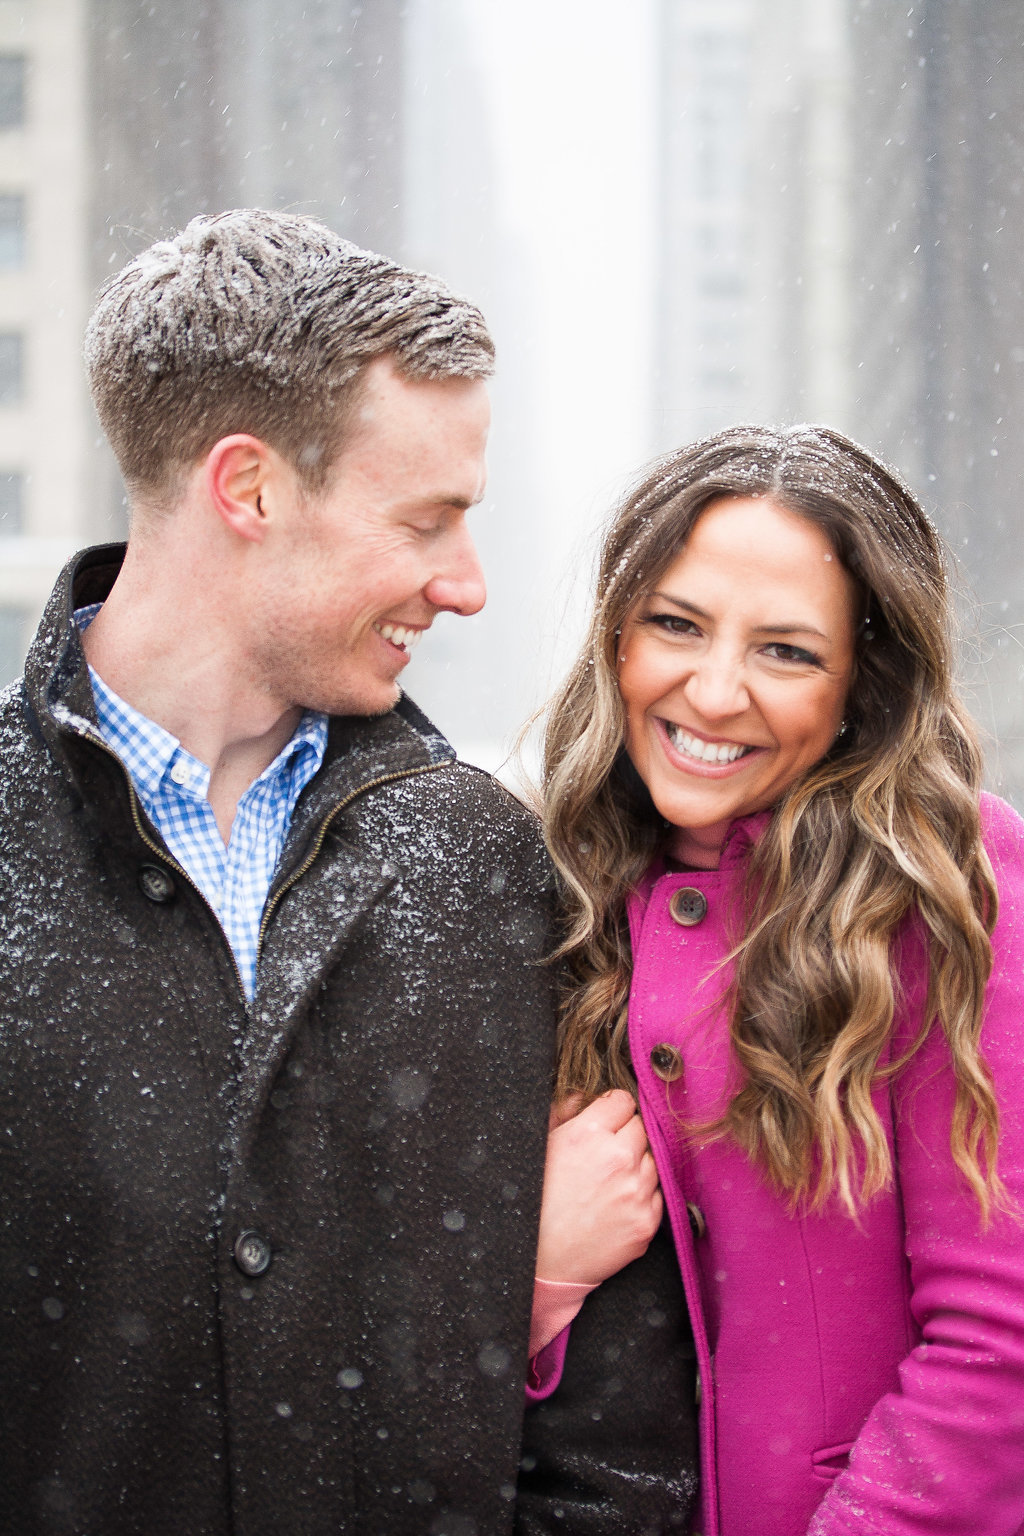 Millennium Park Chicago Illinois Winter Engagement Photographer Taylor Ingles 33